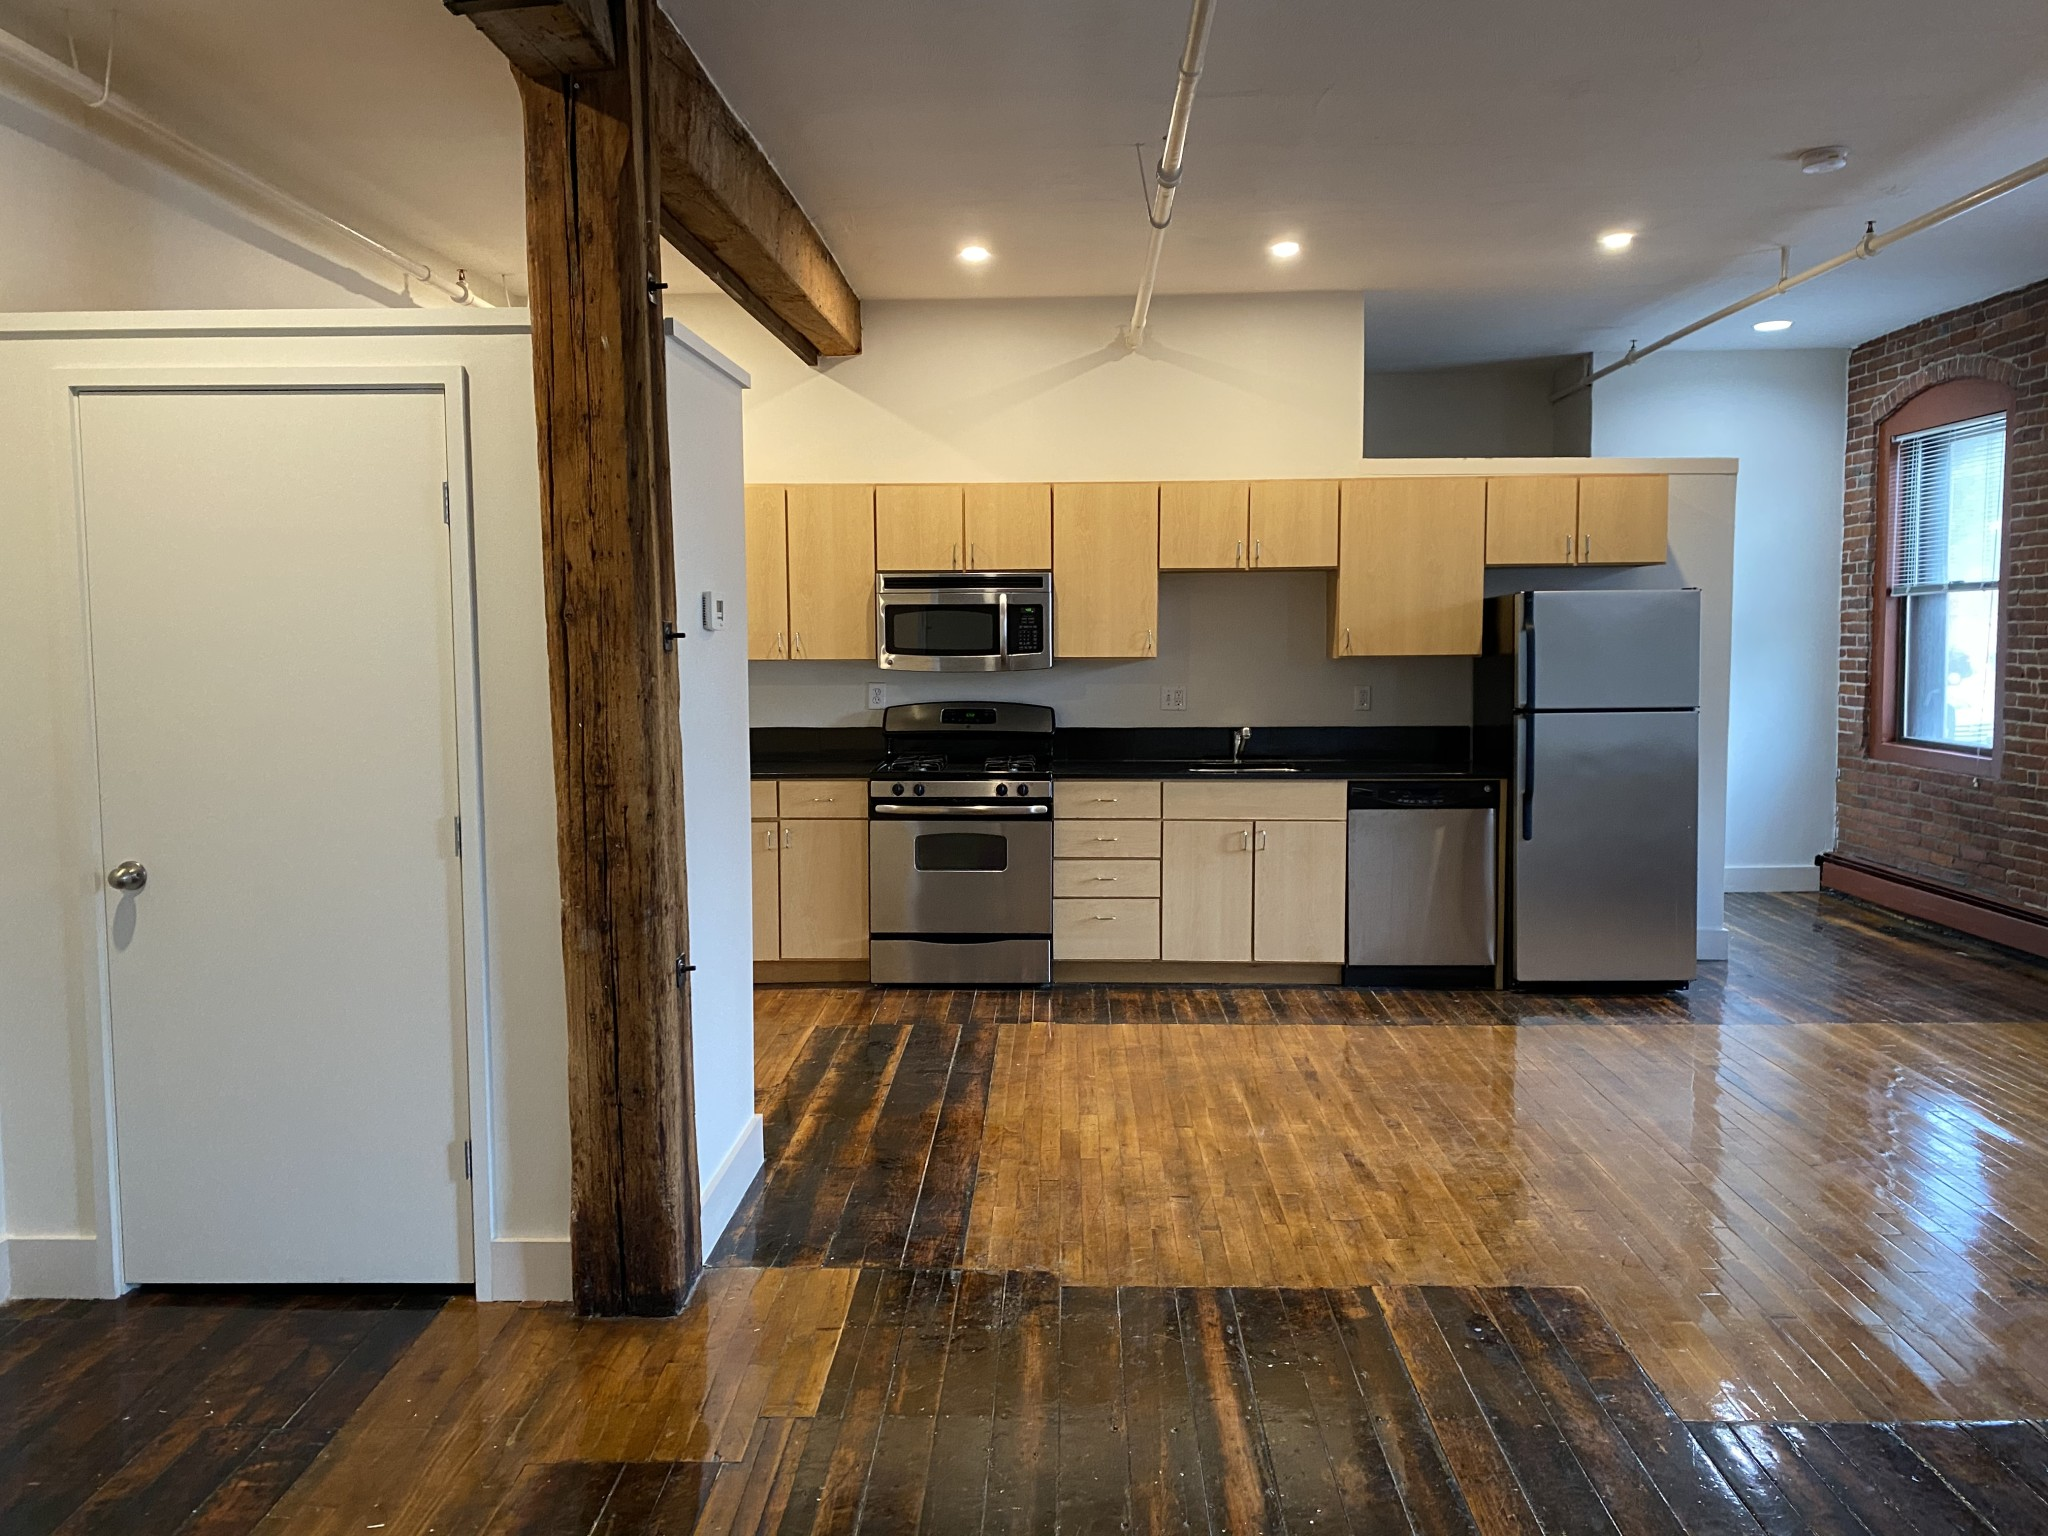 1 Bed, 1 Bath apartment in Boston, South End for $2,400